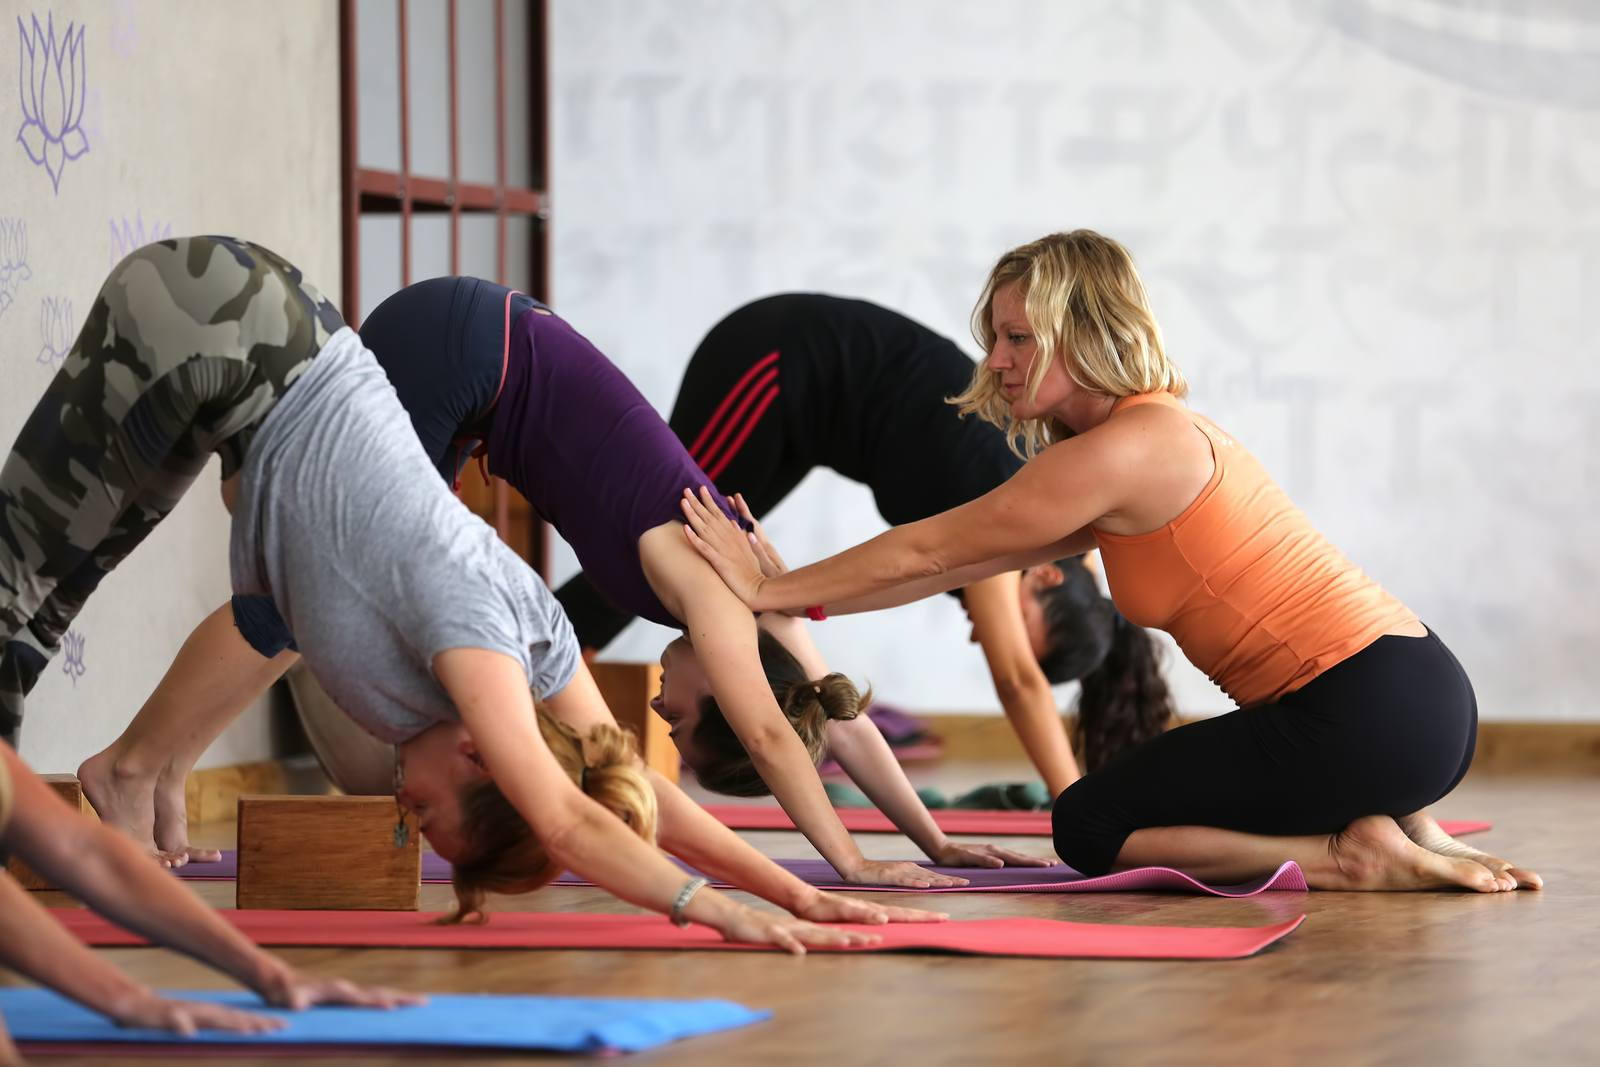 10 Things You Should Know About Your Yoga Instructor